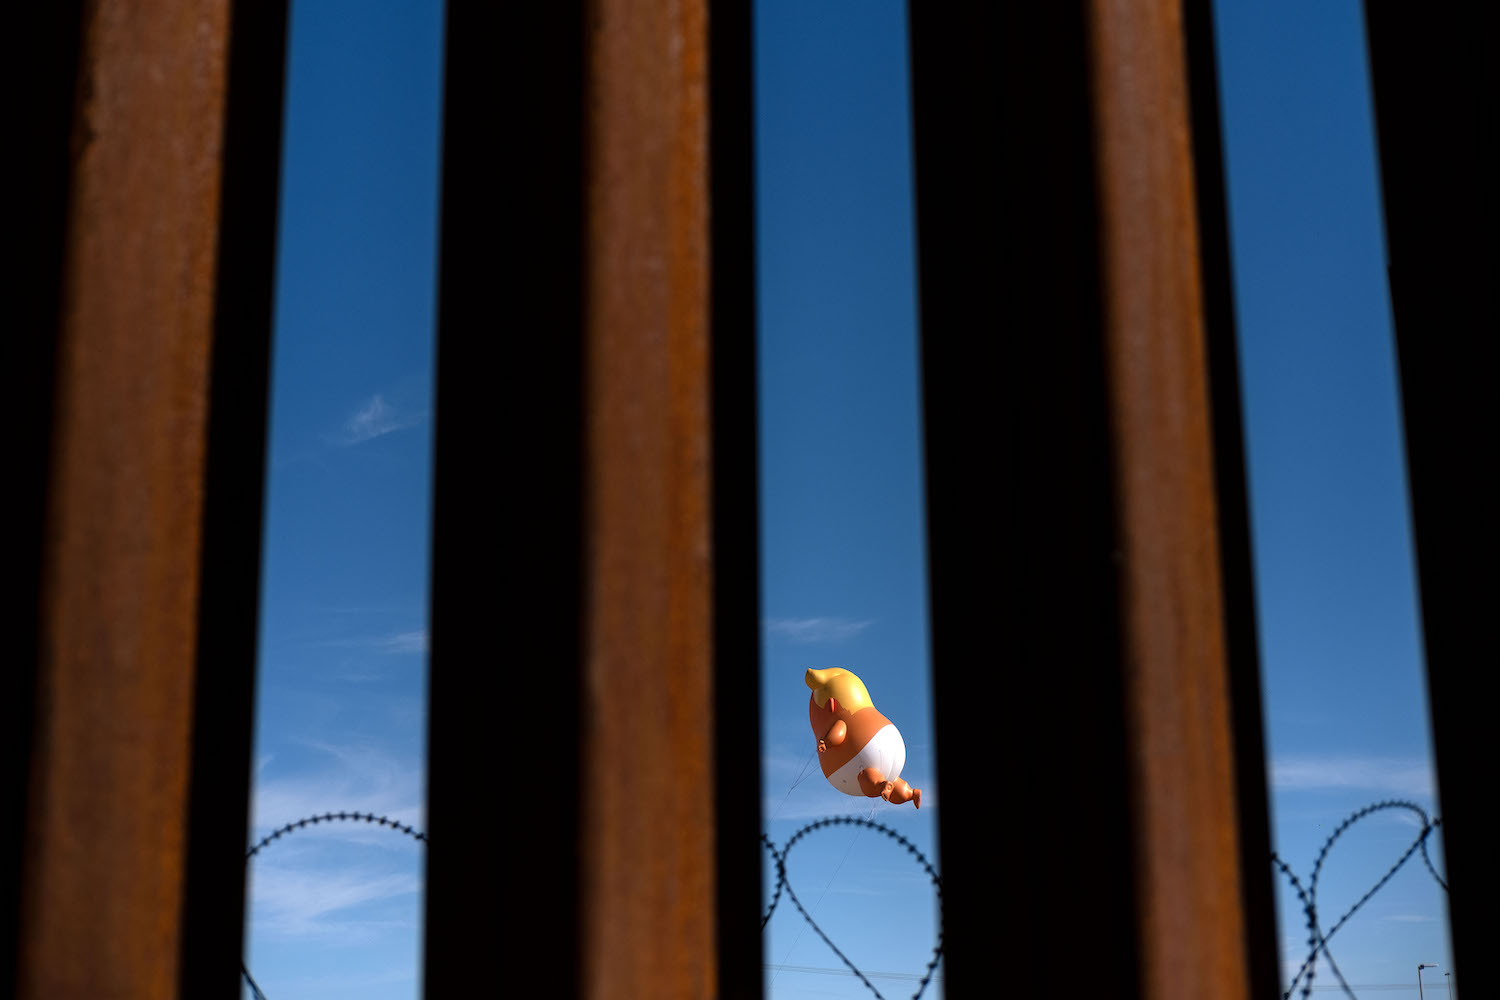 A satirical balloon of a baby U.S. President Donald Trump is seen through the U.S.-Mexico border fence during a demonstration prior to Trump's visit to Calexico, California on April 5.